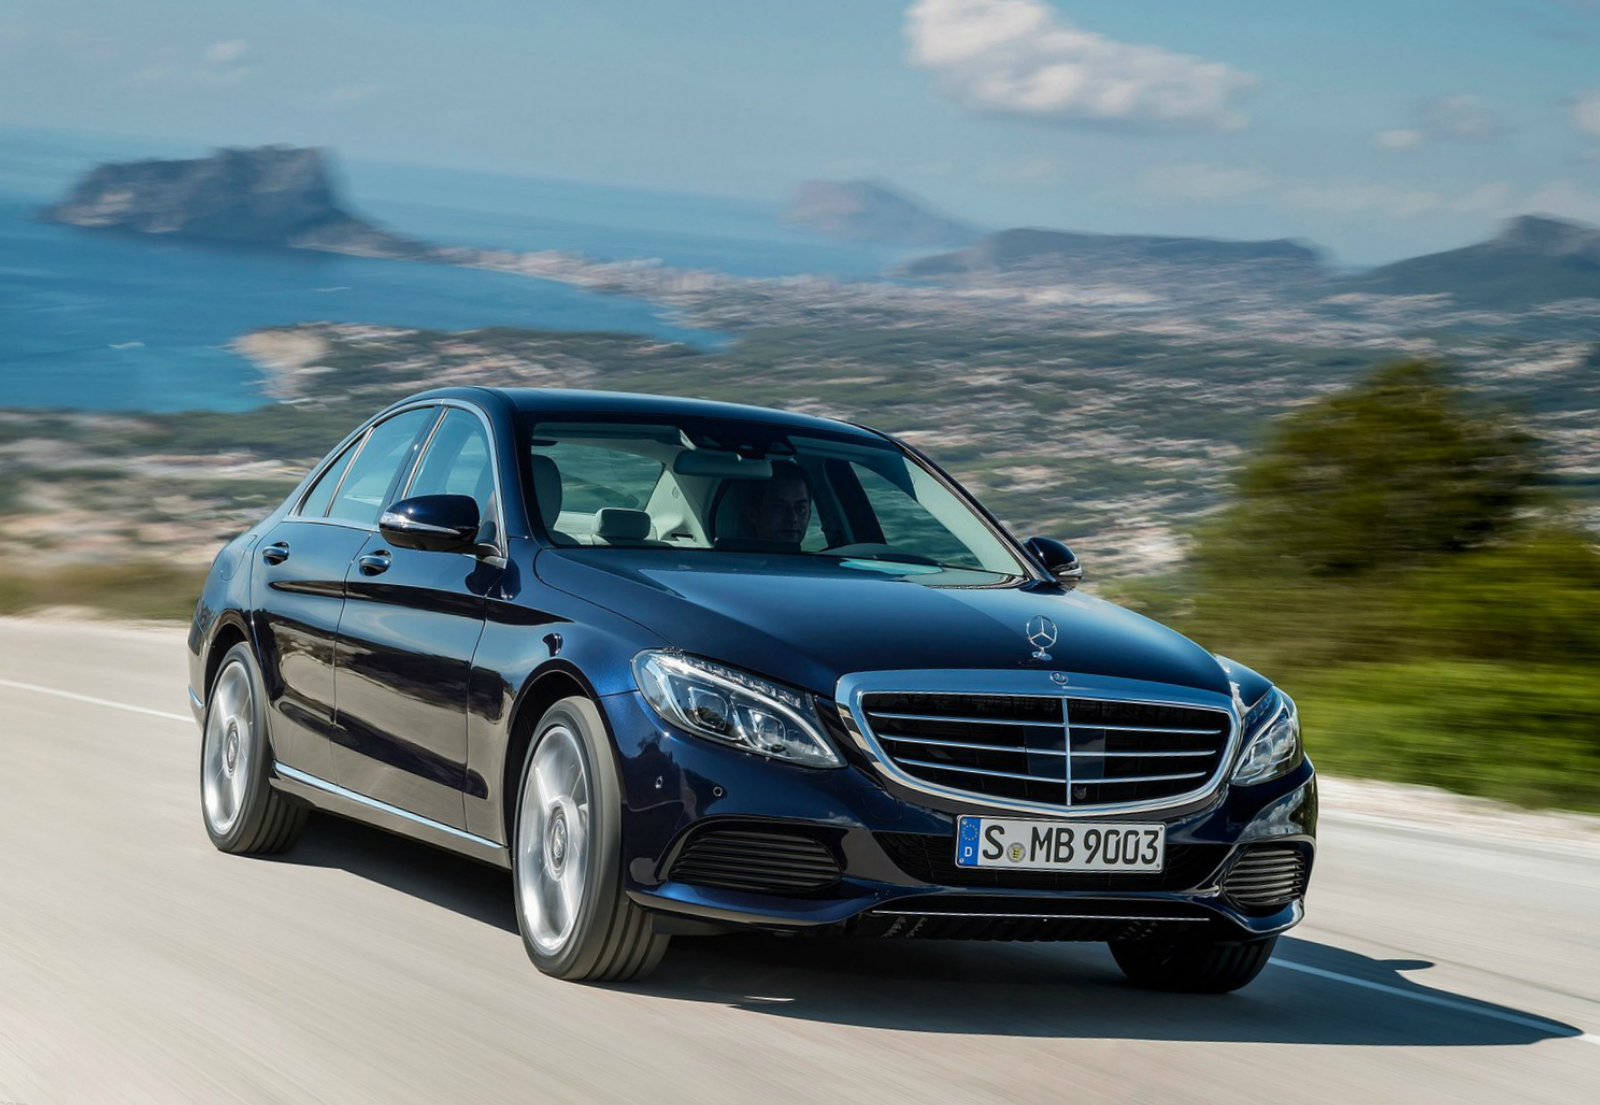 Mercedes benz c class 2015 reviews mercedes benz c class for Mercedes benz c class pictures